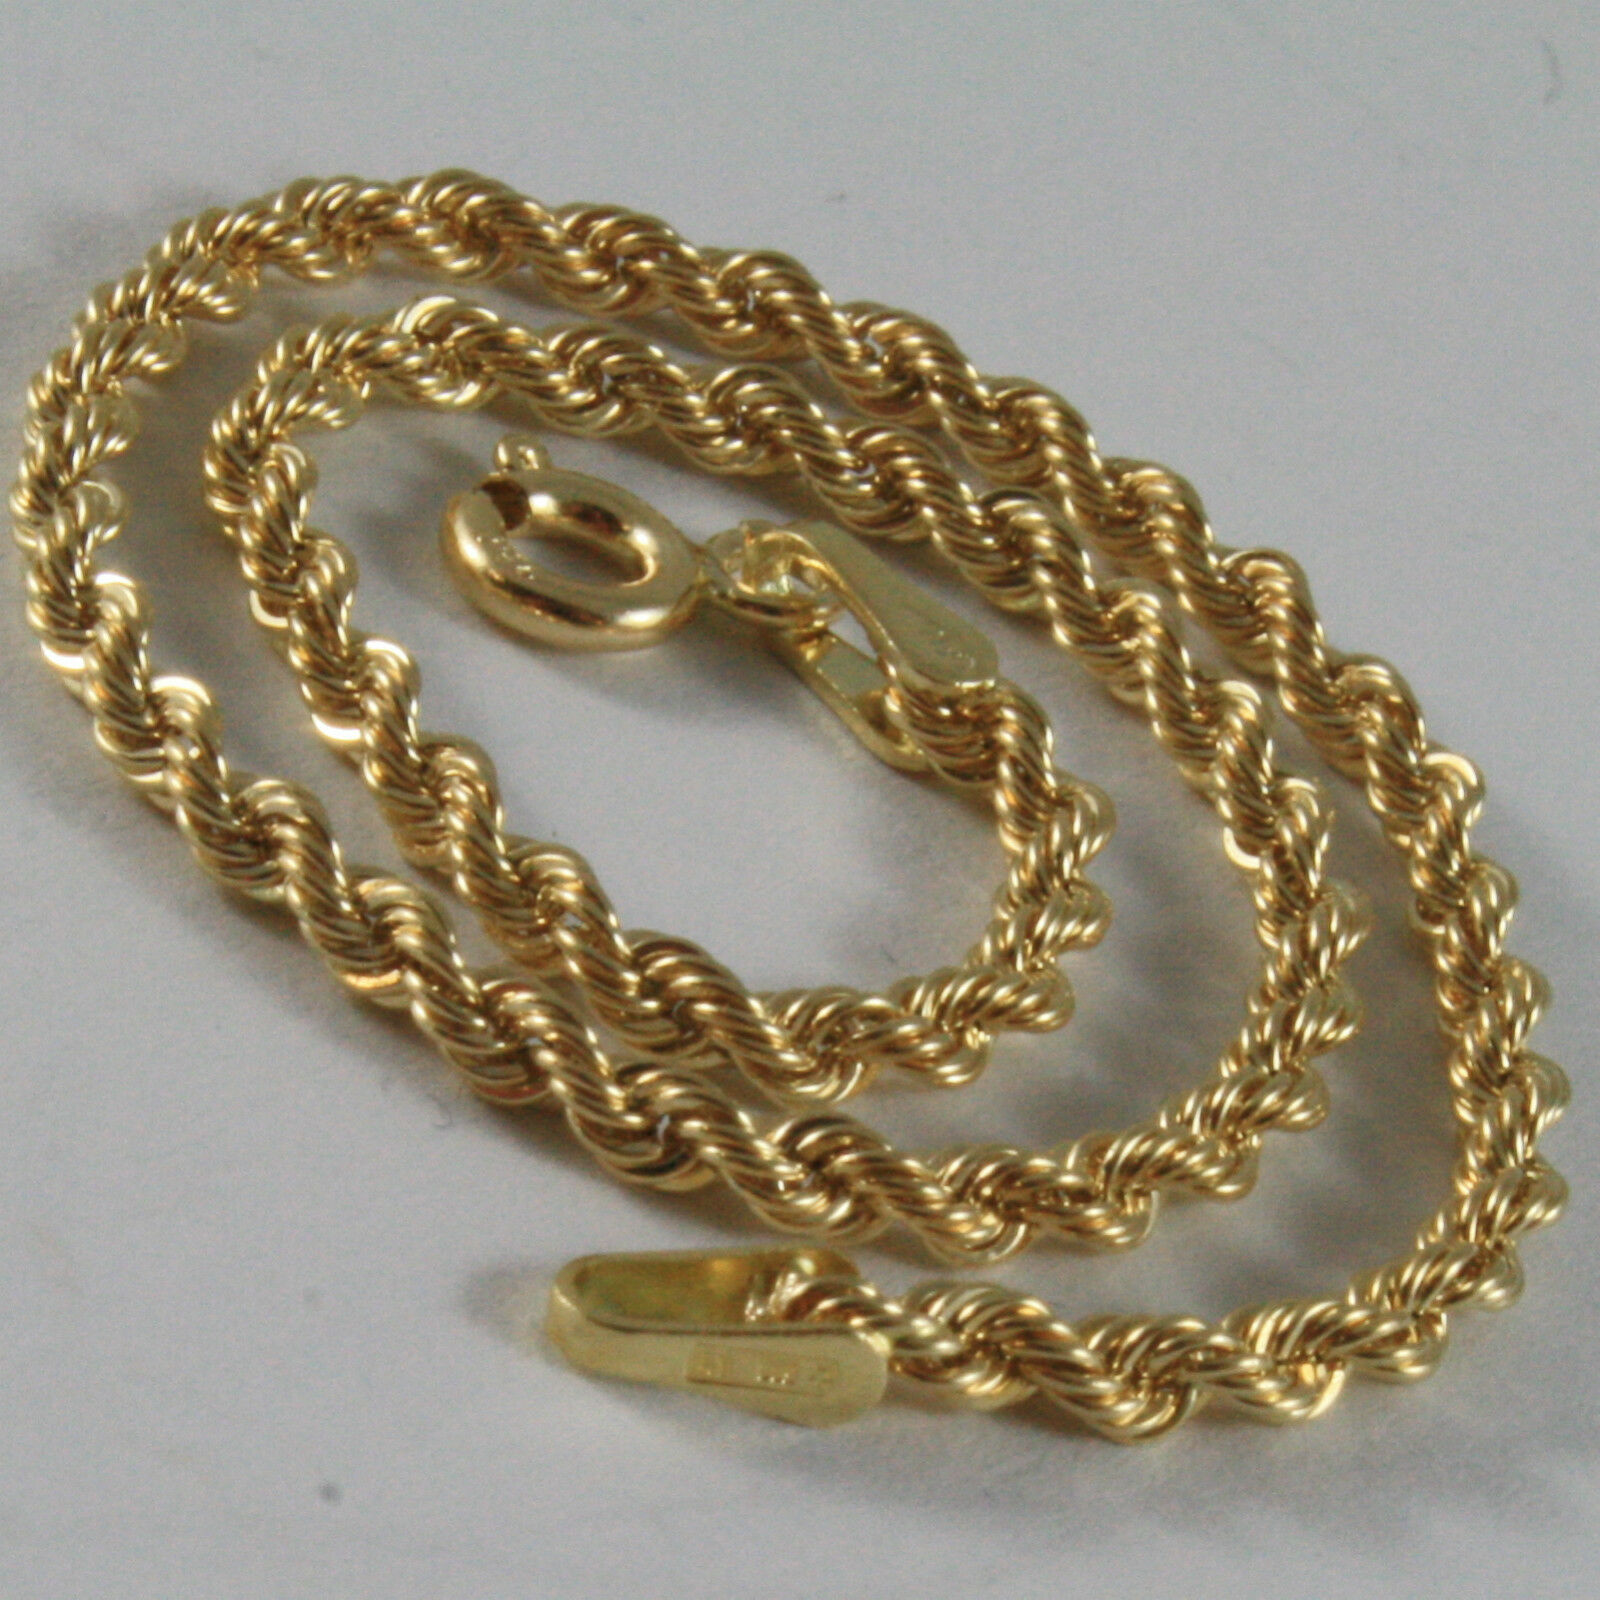 18K YELLOW GOLD BRACELET, BRAID ROPE MESH, 7.30 INCH LONG, MADE IN ITALY image 2